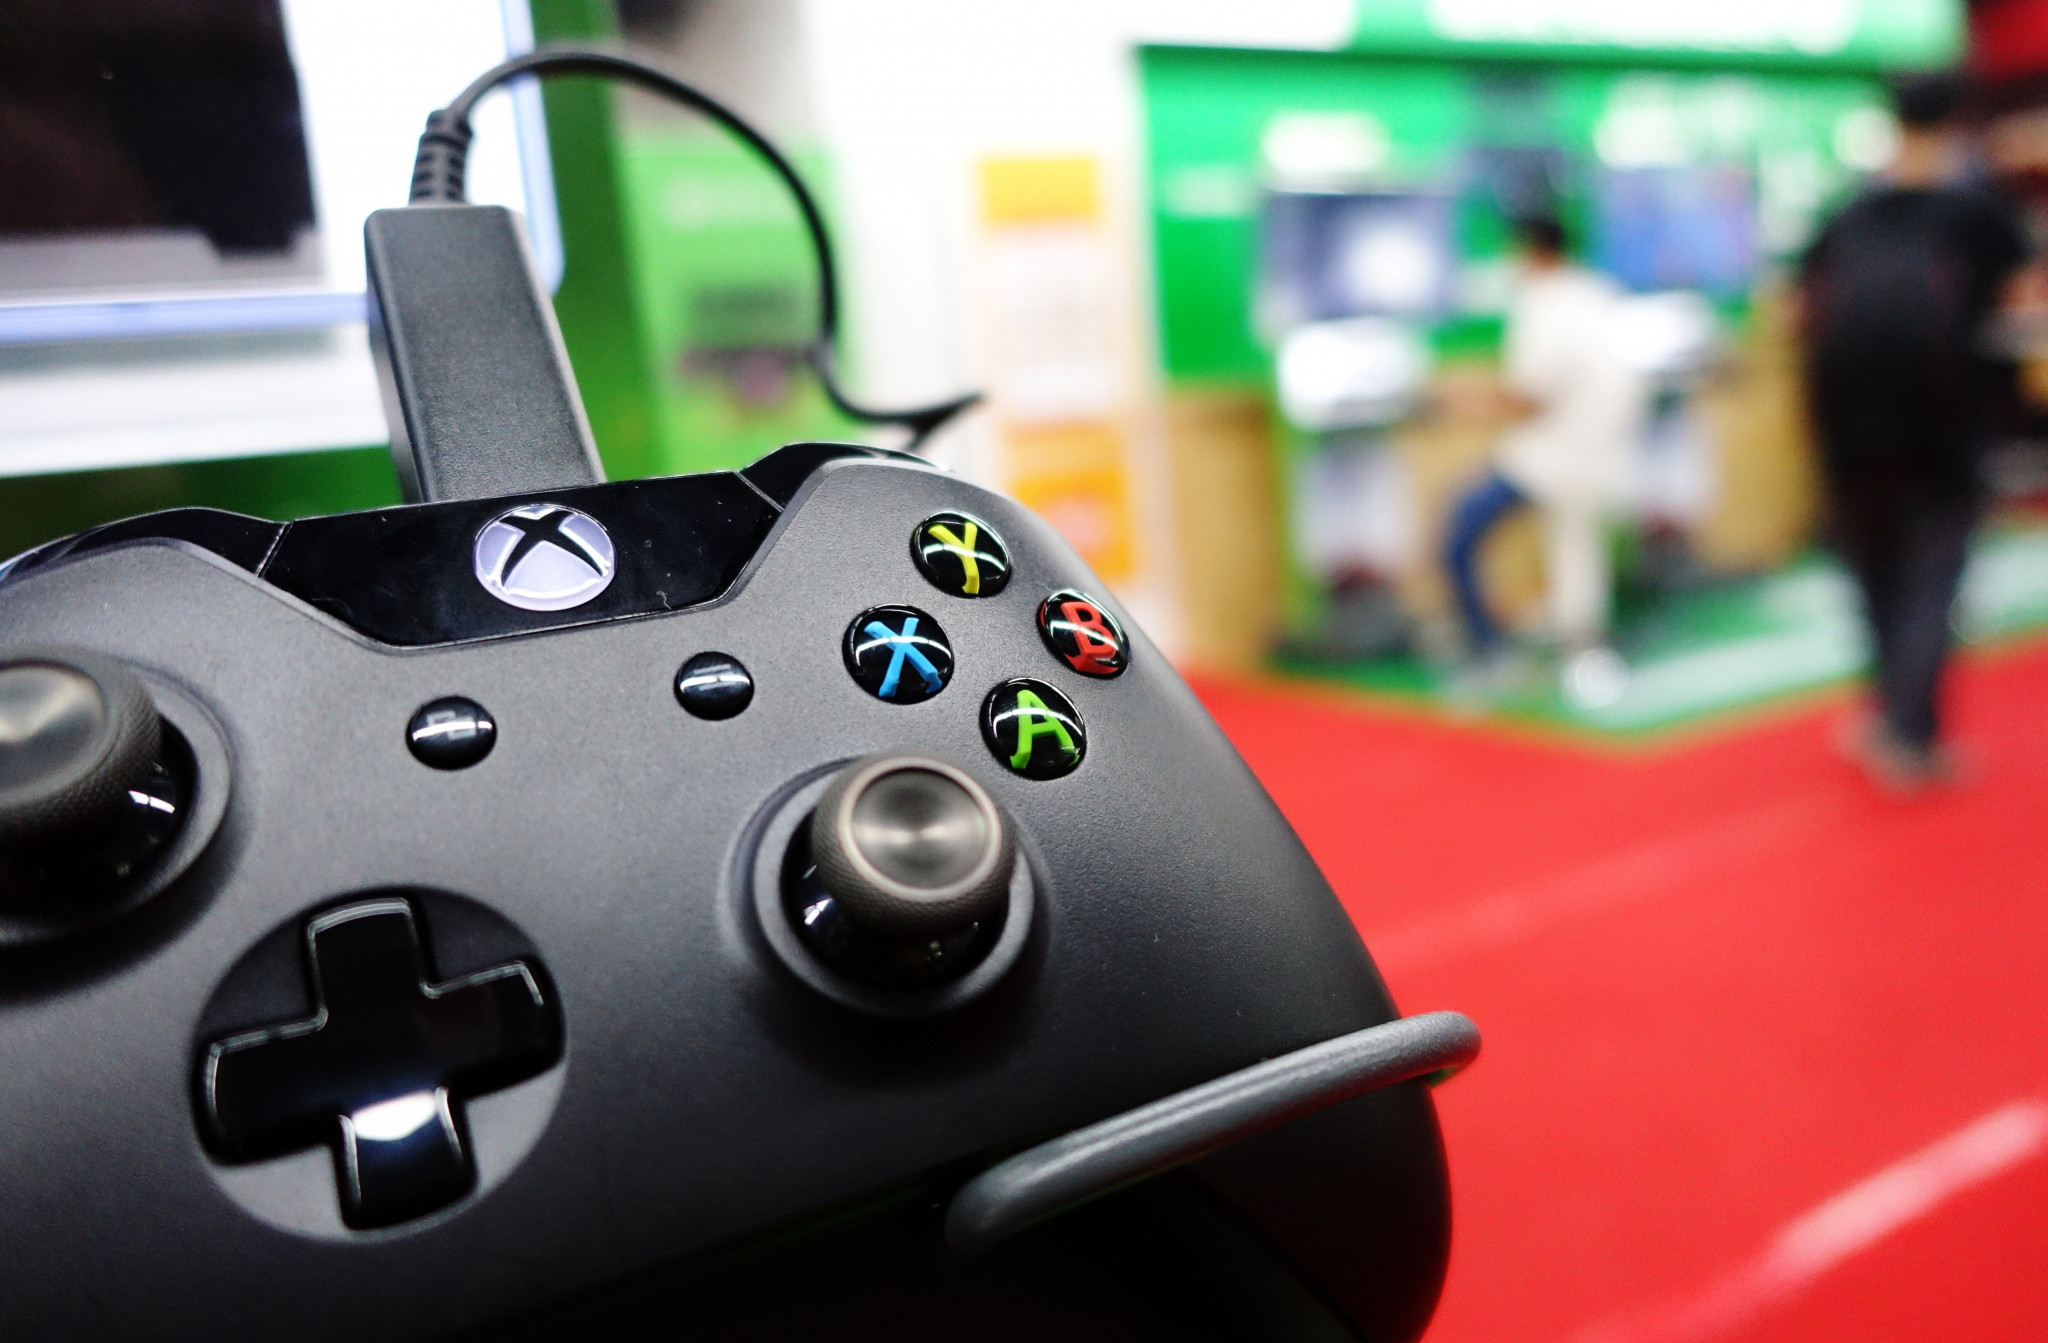 """Xbox and Special Olympics hold inaugural """"Gaming for Inclusion"""" event"""